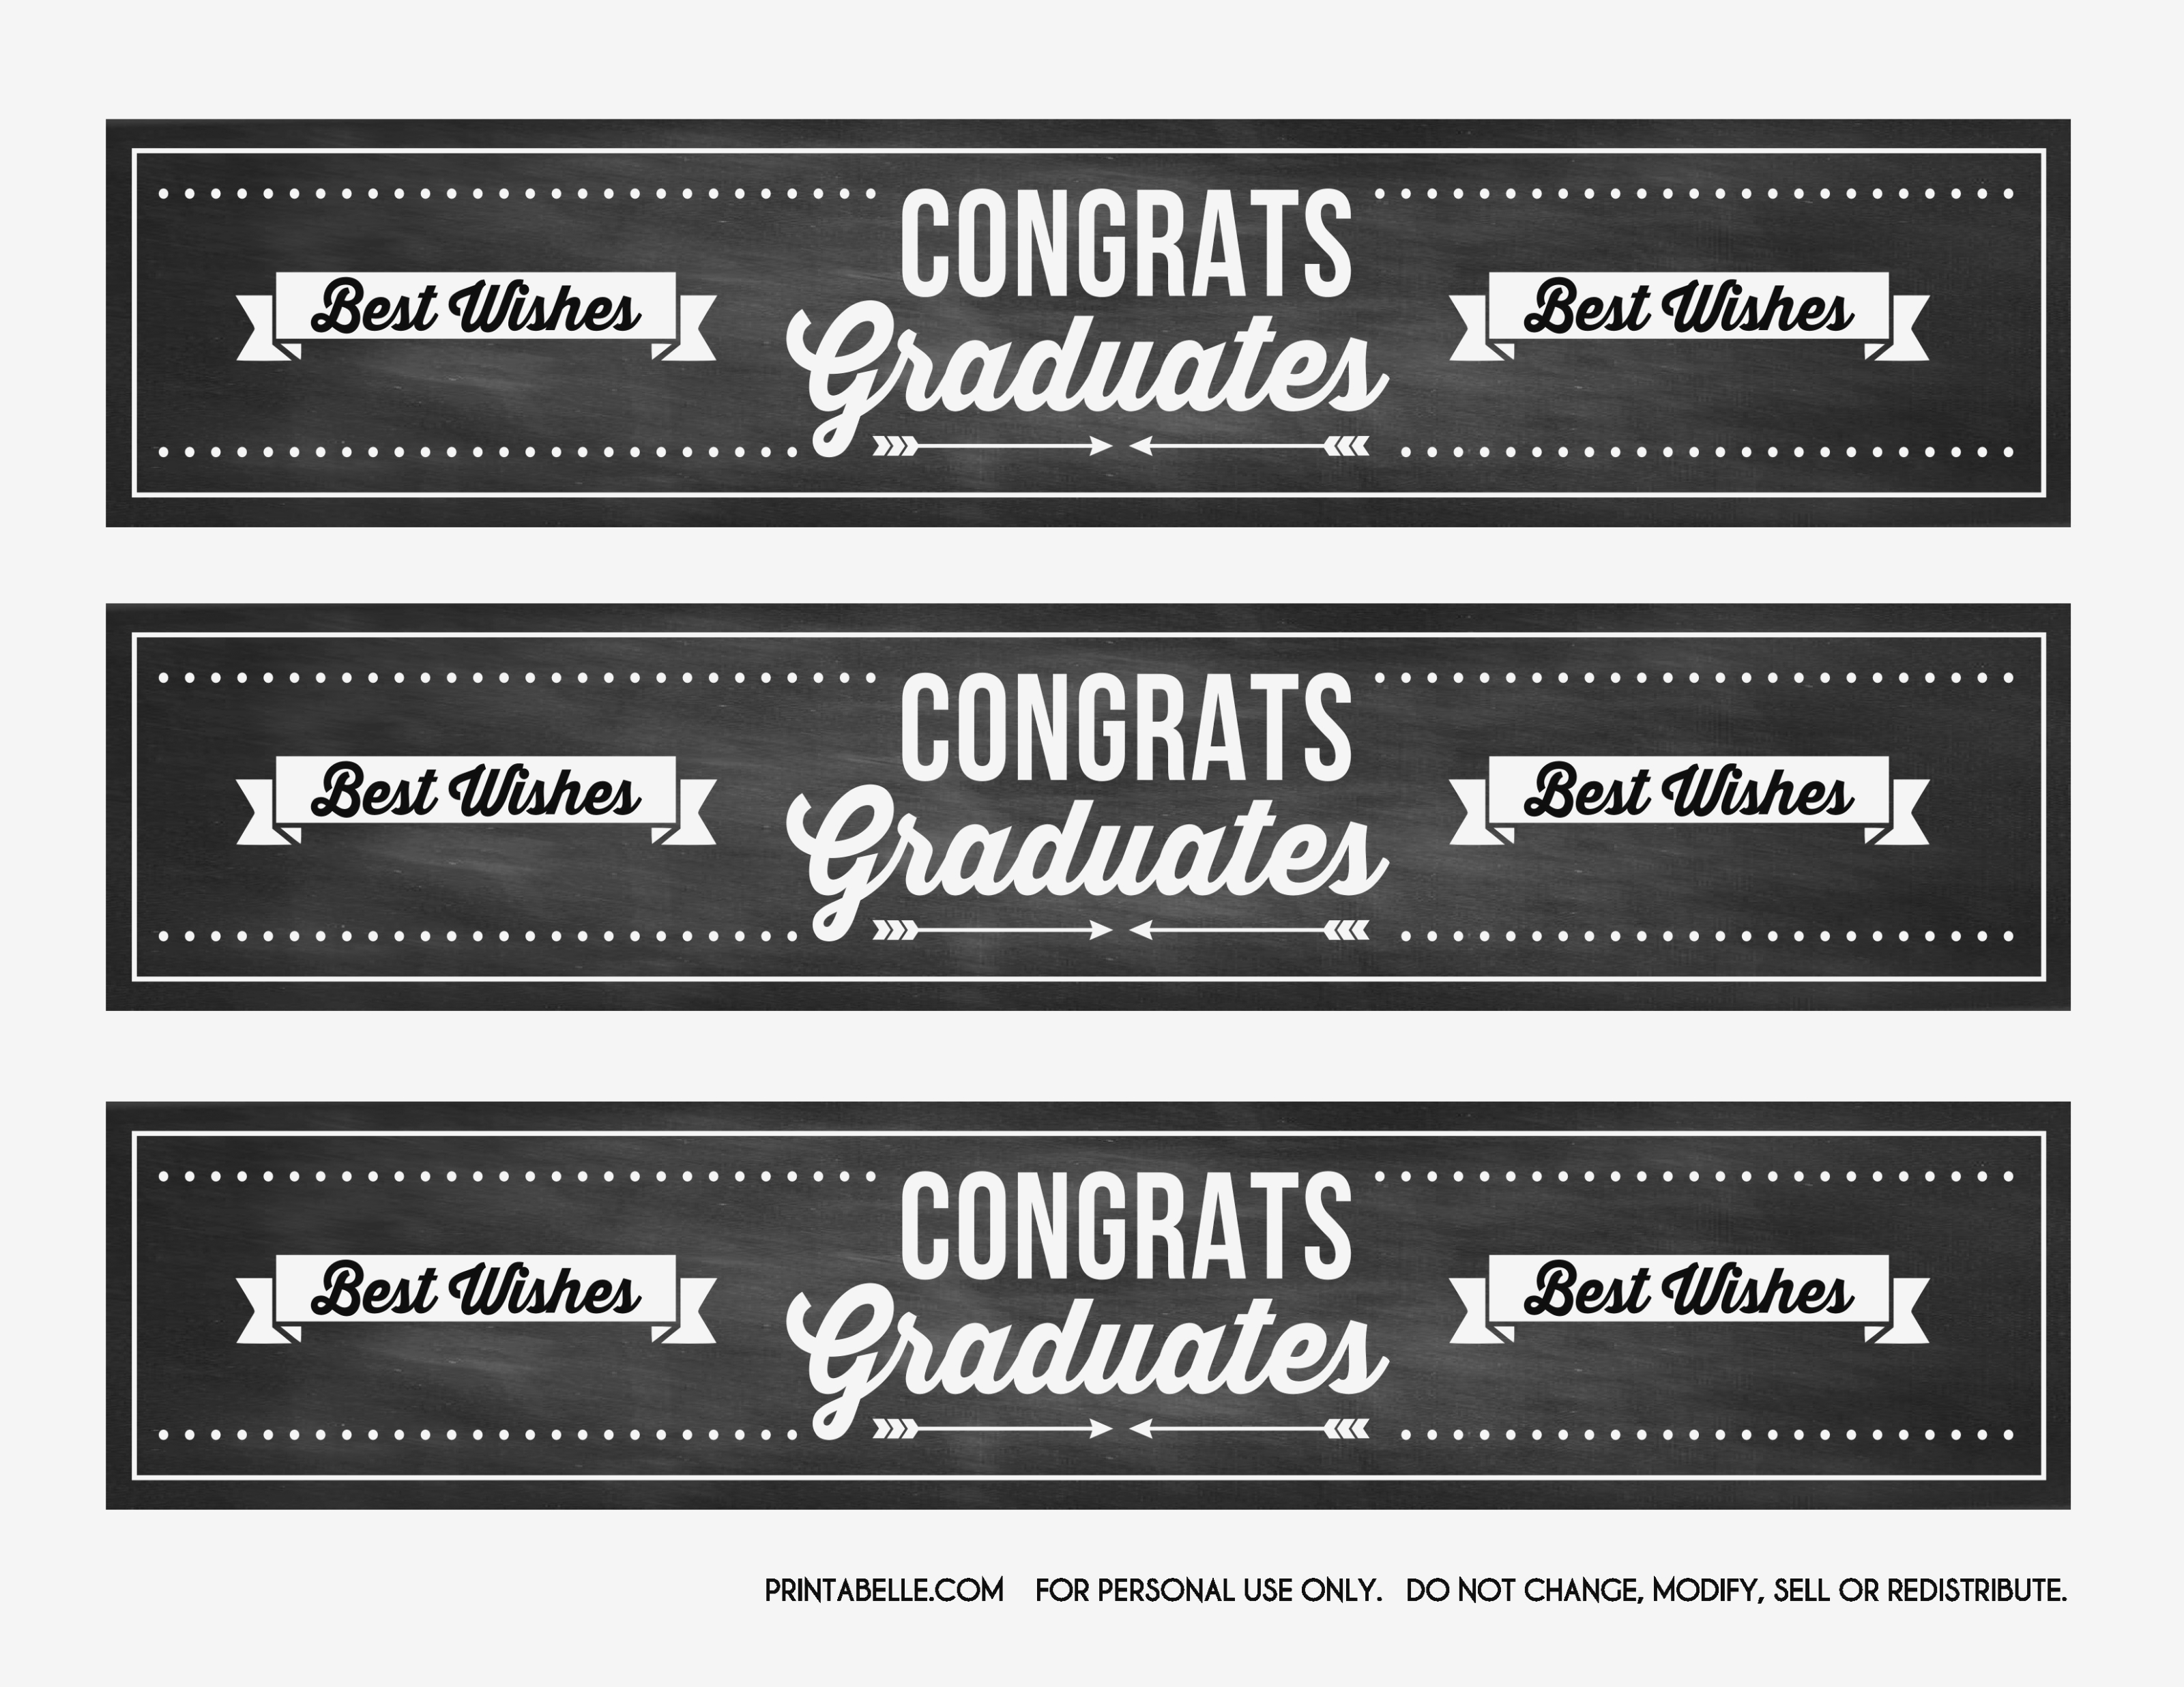 Free Printable Label Templates 15 | Printable And Formats - Free Printable Graduation Address Labels